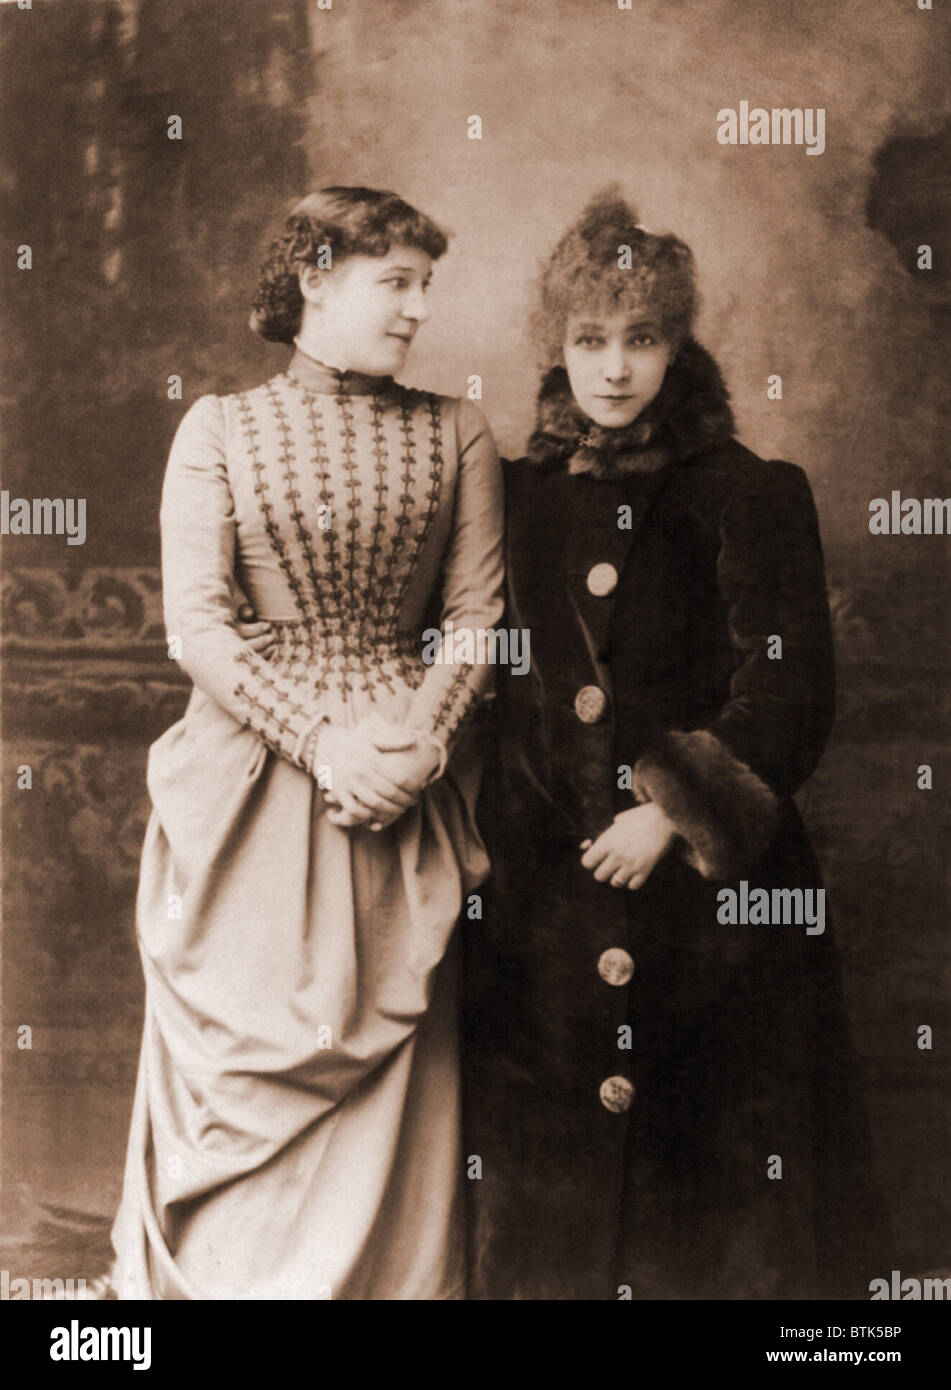 Sarah Bernhardt (1844-1923), French actress, with her English contemporary, actress Lillie Langtry.  Ca. 1887. - Stock Image